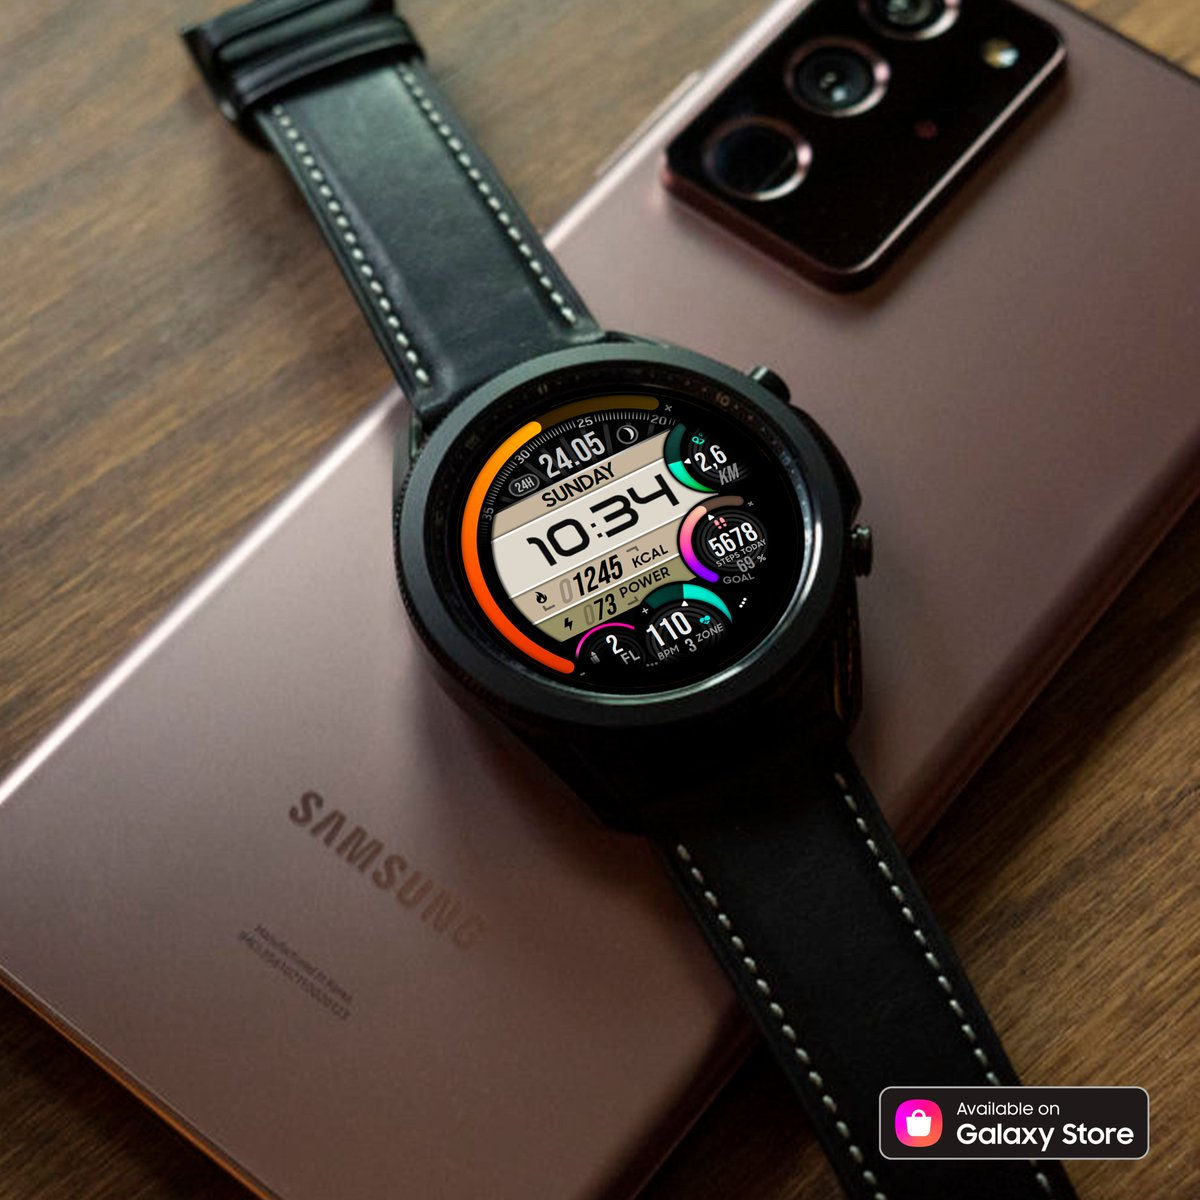 Discover tomorrow.  Watchface name -> HEALTH FACE Nº53 Watchface link  - > https://galaxy.store/HF53   @samsung_dev  #BeASamsungDev #samsung #galaxywatch3 #WearableTech #gearS3 #samsunggalaxy #Watch #galaxywatchactive2 #watchfaces #galaxywatch #galaxywatch46mm #galaxystorepic.twitter.com/wNb1kZYKIM